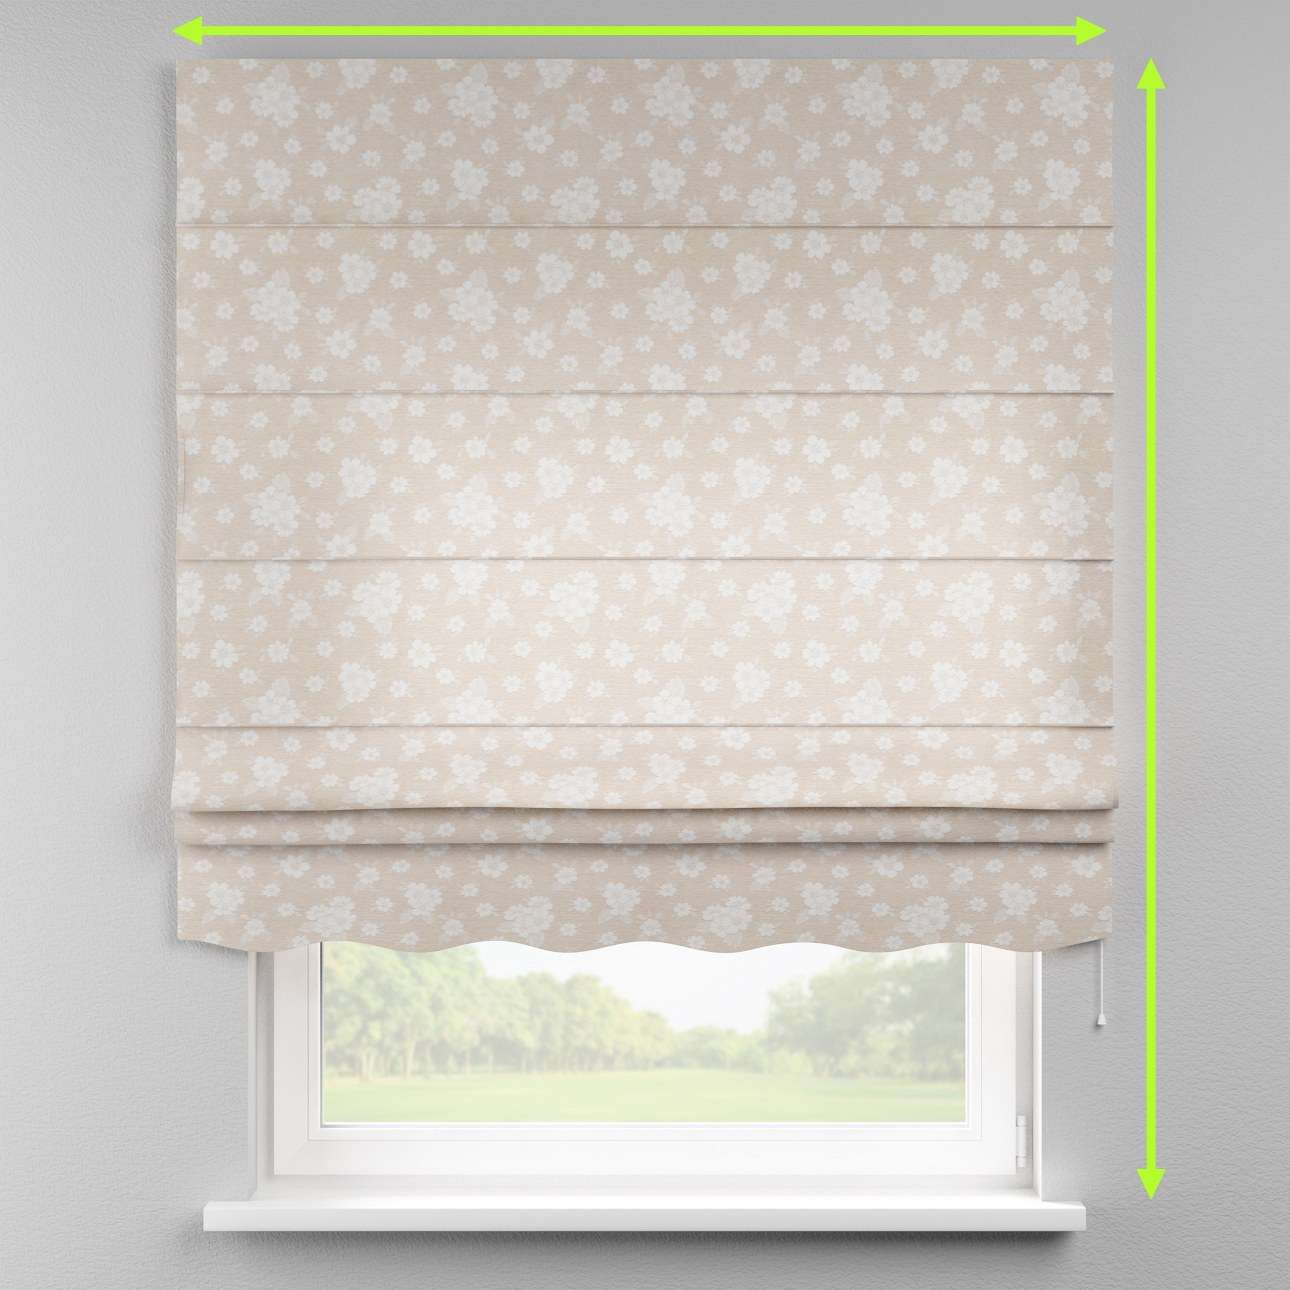 Florence roman blind  in collection Rustica, fabric: 138-26